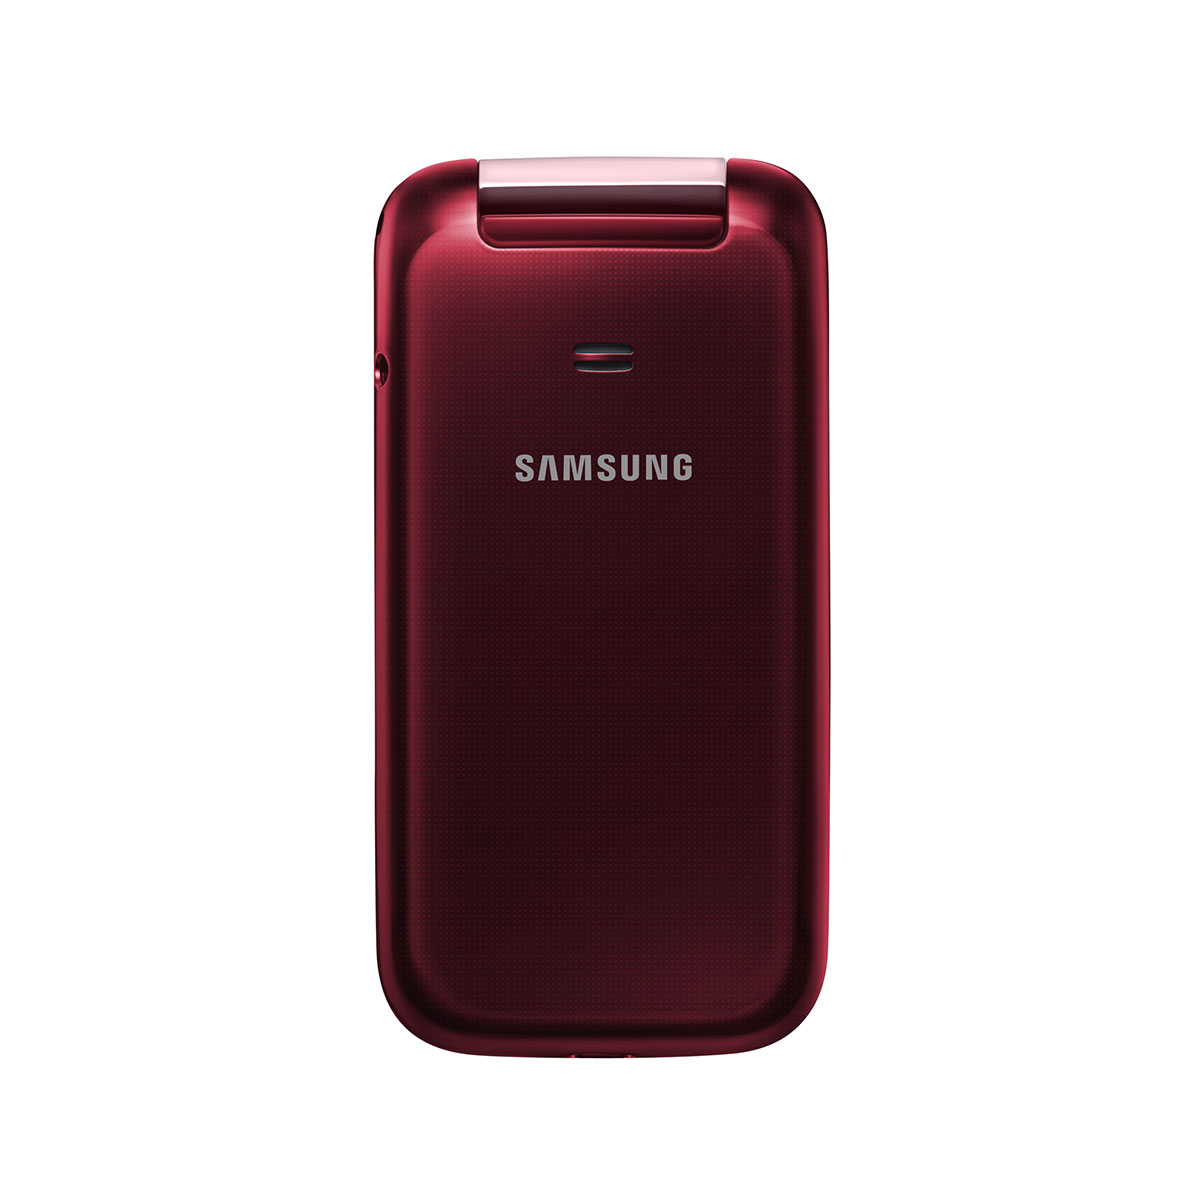 samsung c3590 red wine mobile smartphone samsung sur ldlc. Black Bedroom Furniture Sets. Home Design Ideas